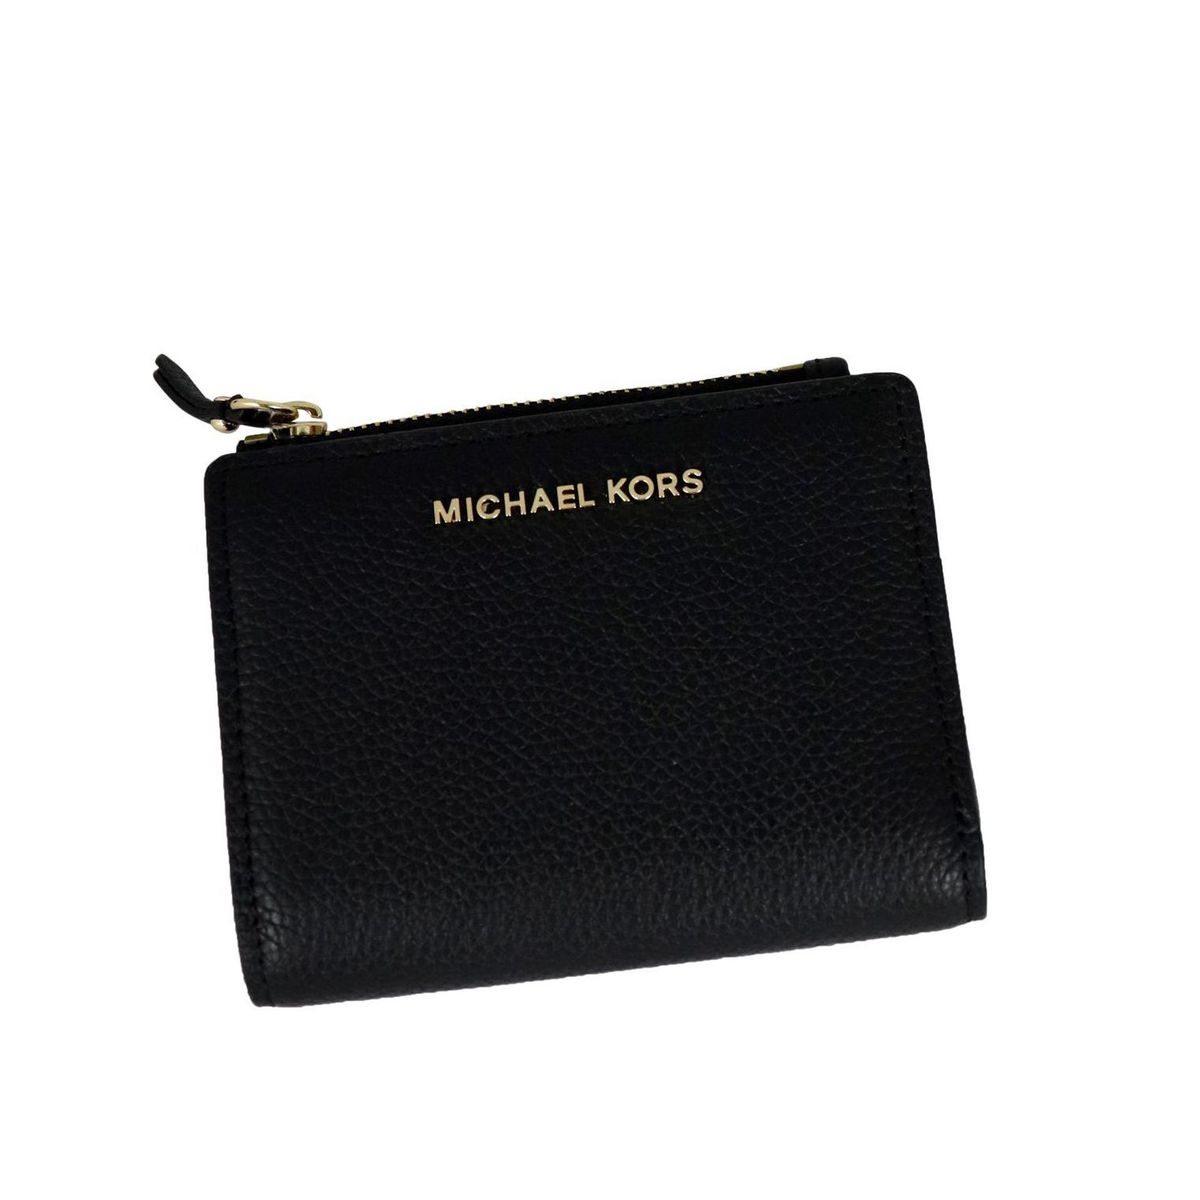 Textured leather wallet with zip and logo Black Michael Kors